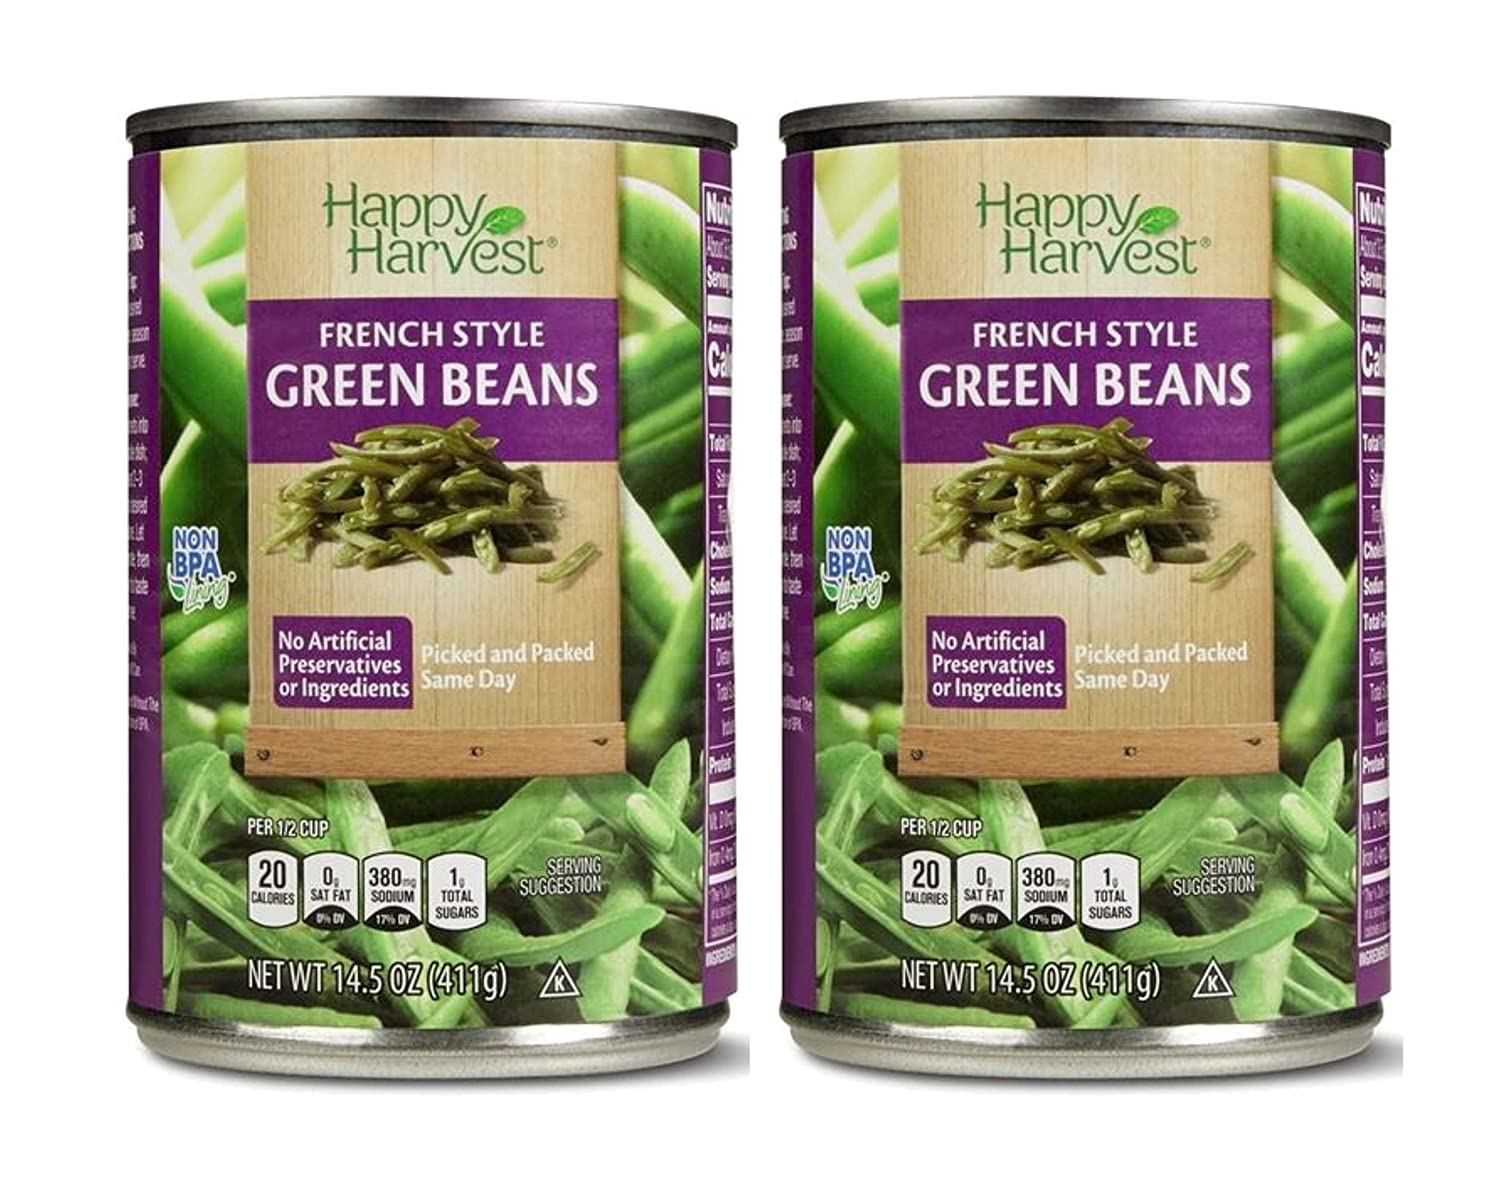 Happy Harvest French Style Fresh Picked Natural No-BPA Canned Green Beans - 2 Can (14.5 oz)